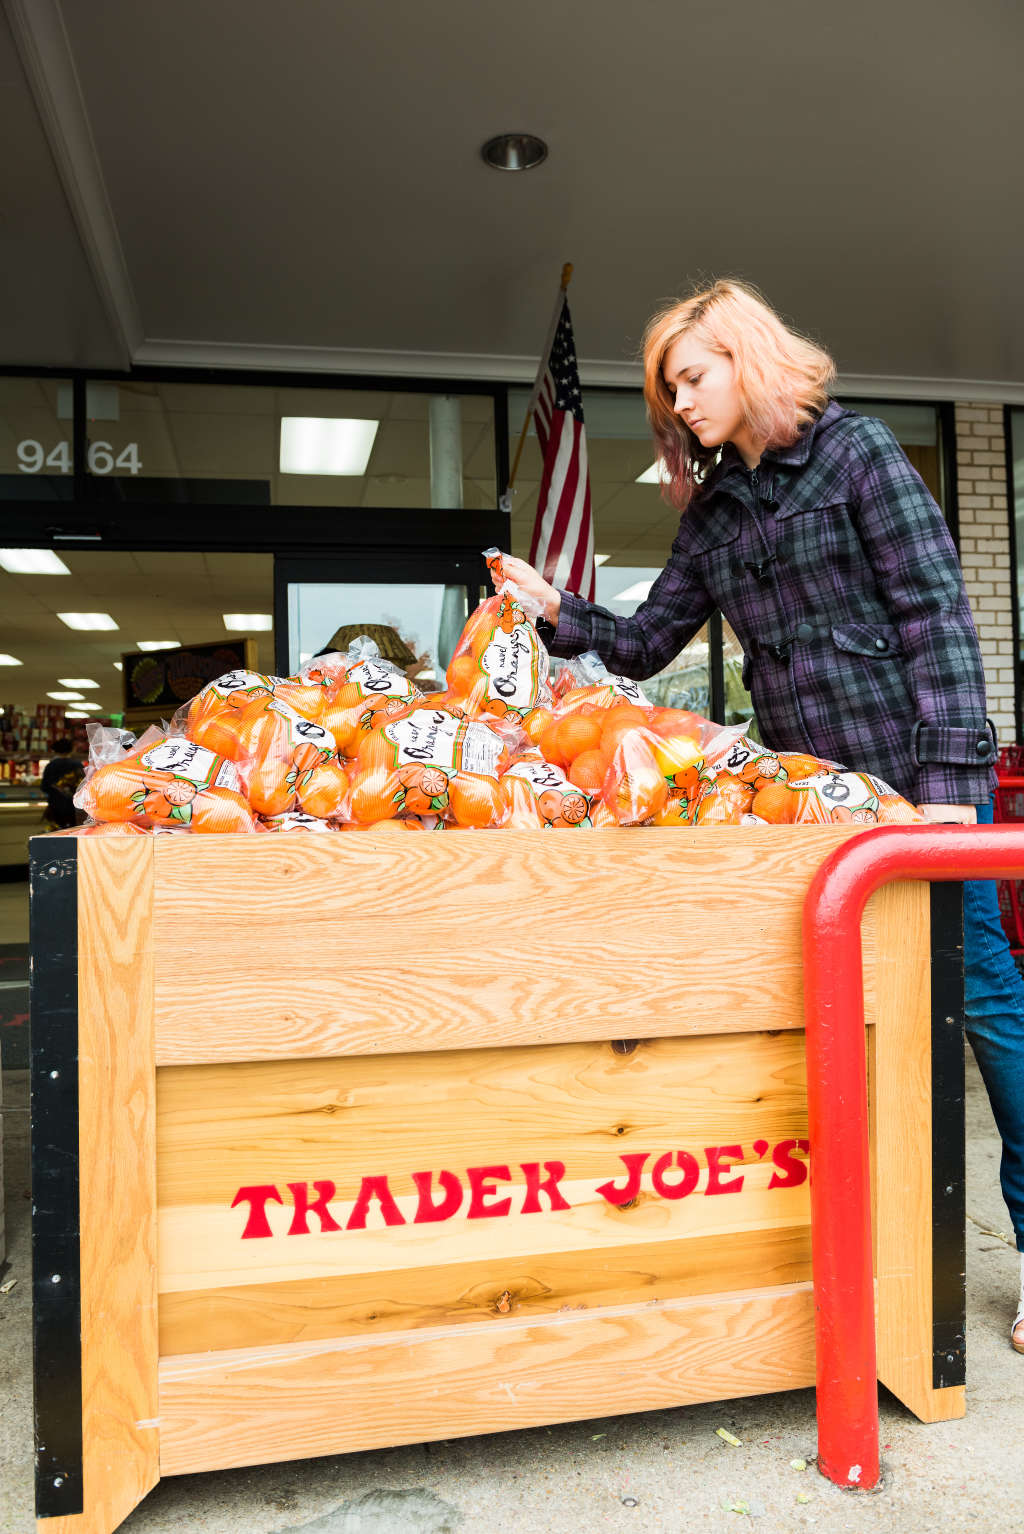 The Best Non-Food Thing to Buy at Trader Joe's